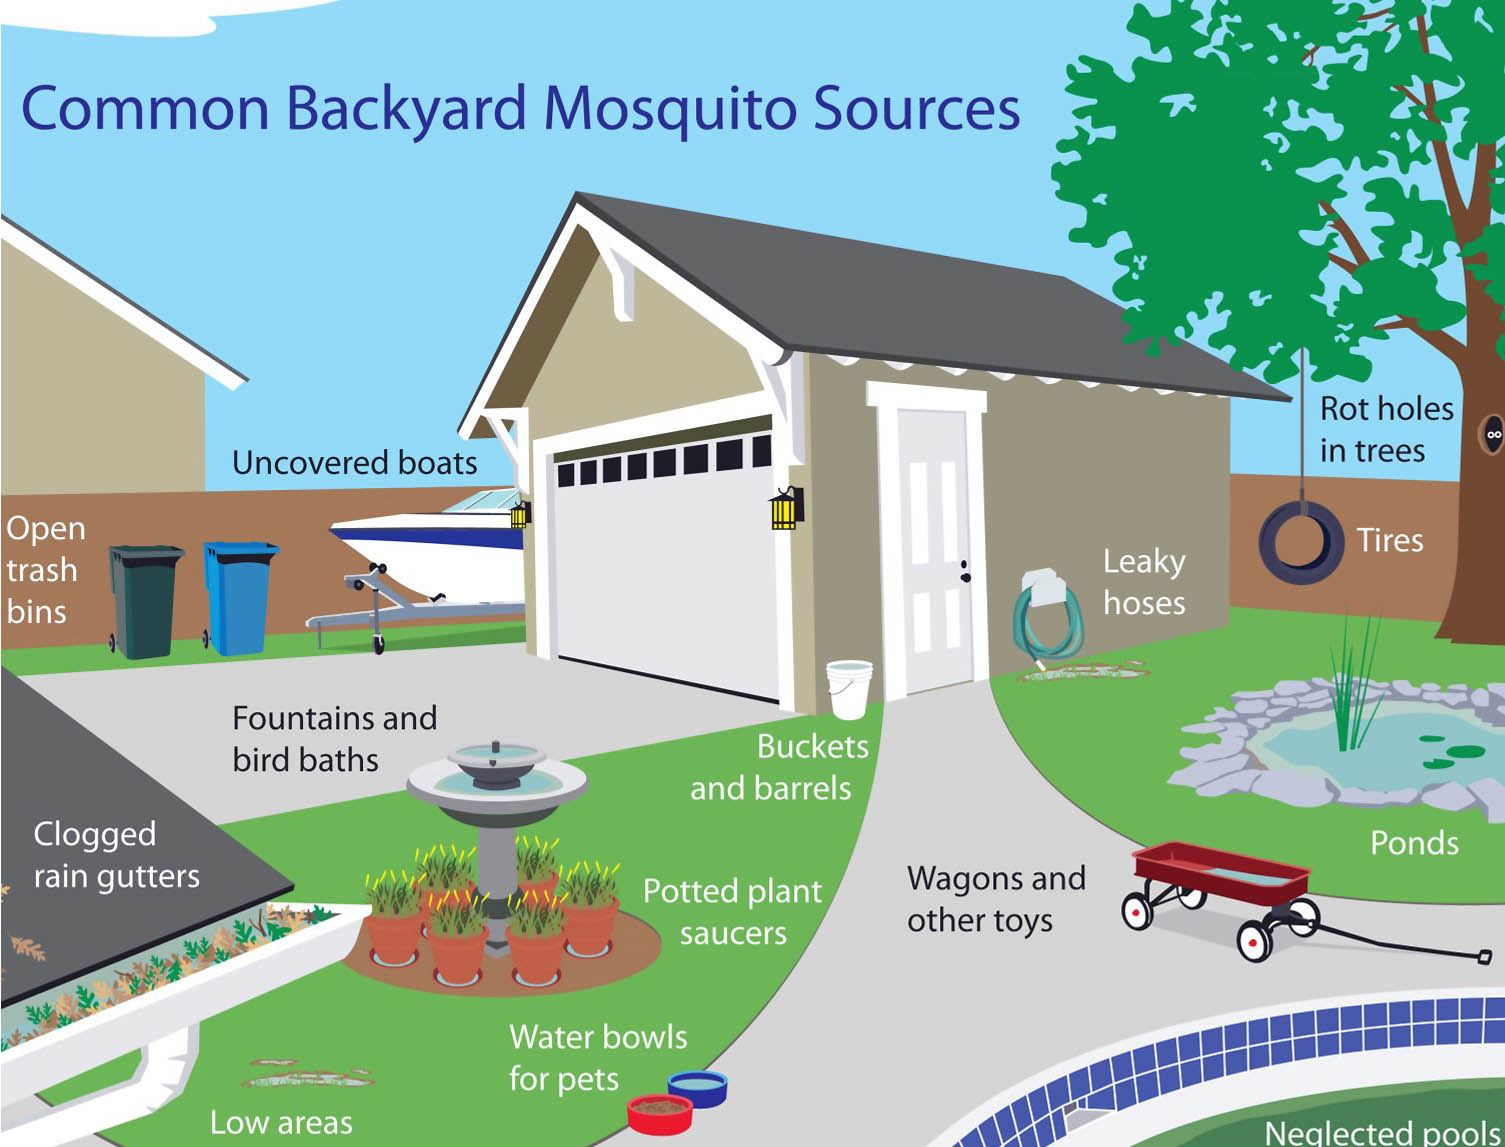 Common backyard mosquito sources diagram